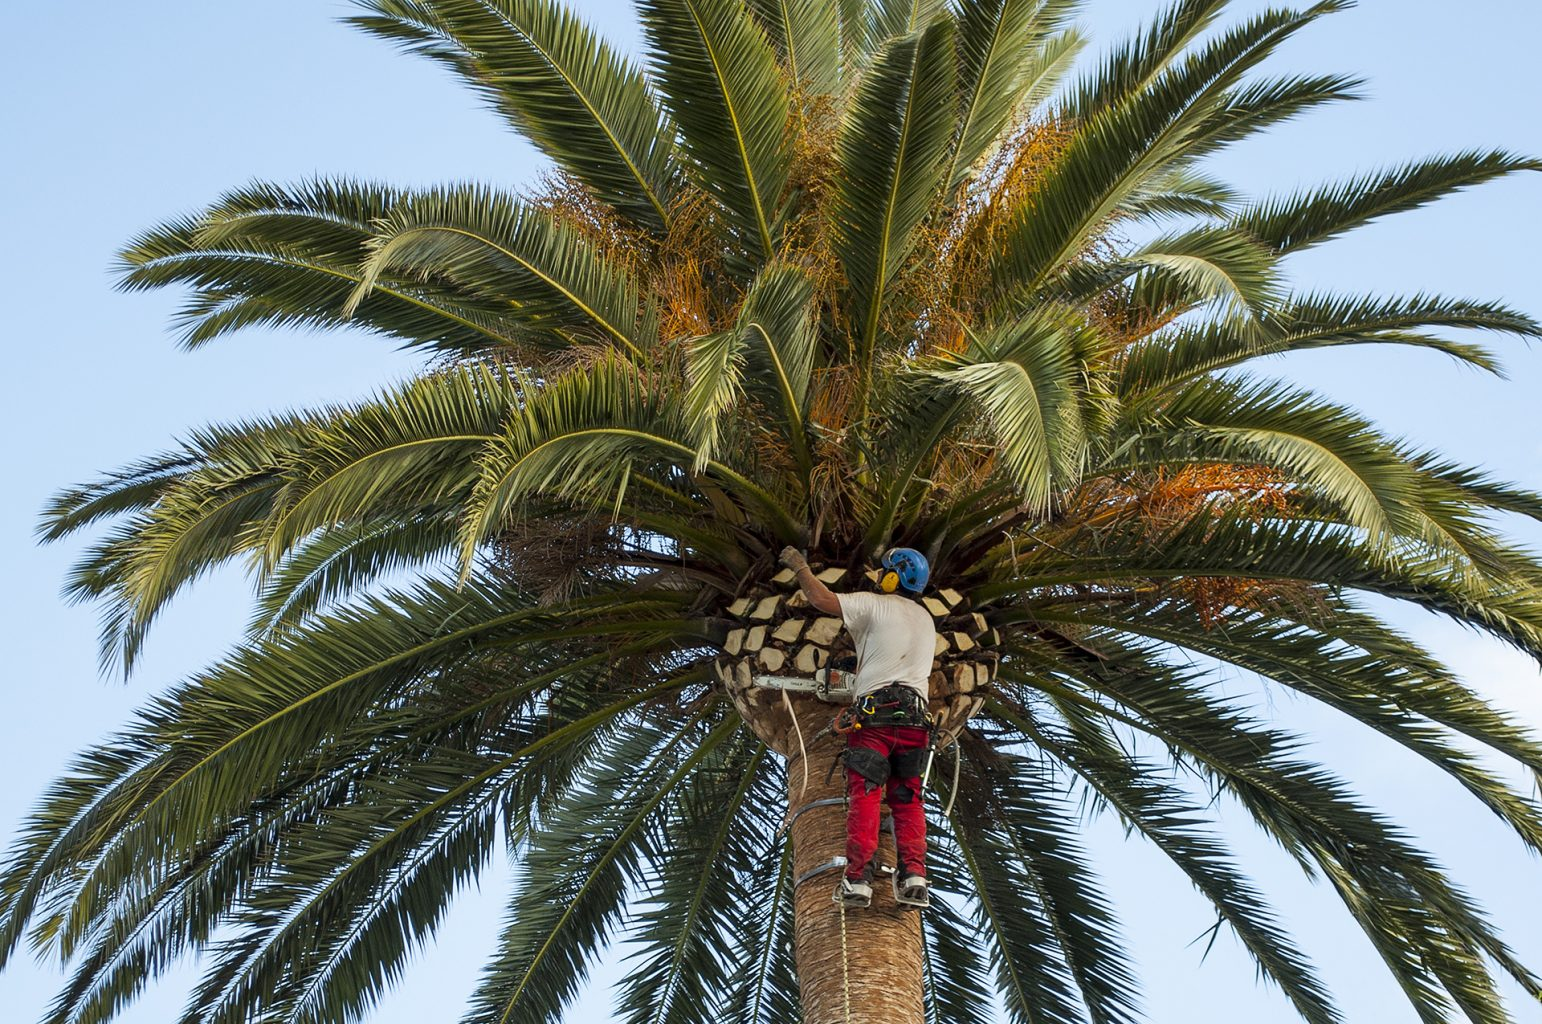 Bio-recycled - Fiber from palm tree pruning.